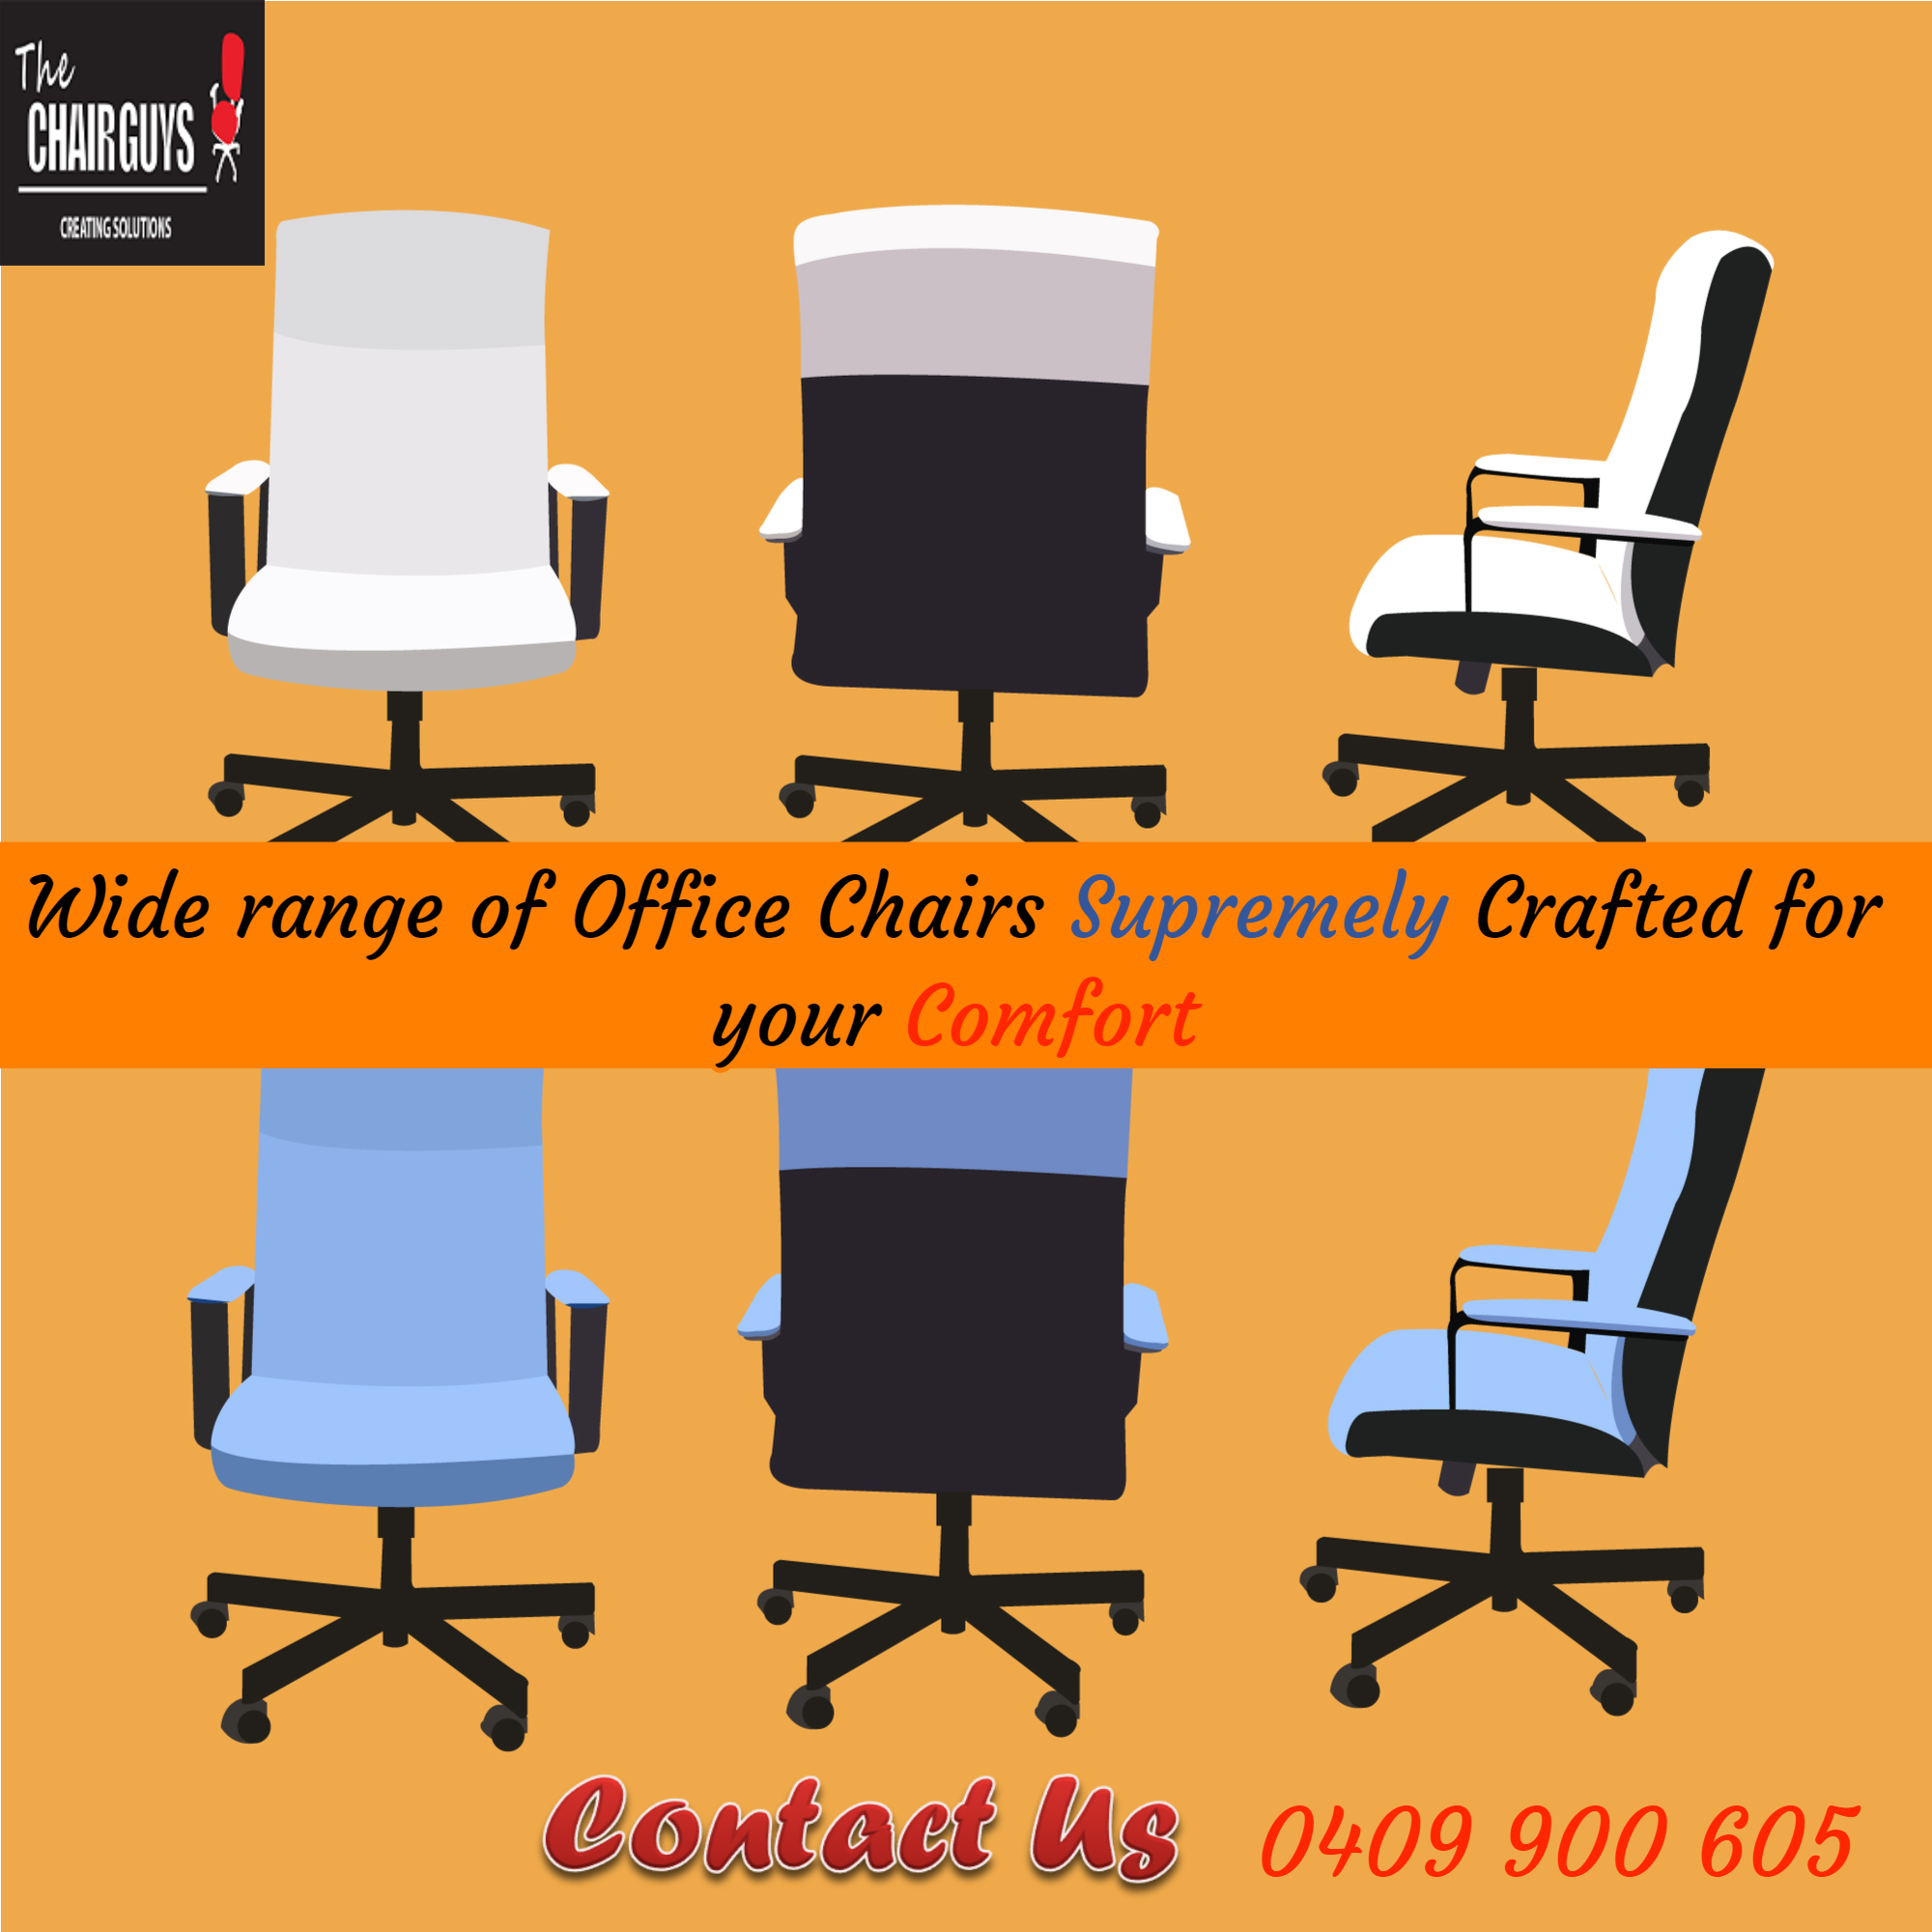 Surprising We Offer A Wide Range Of Office Chairs In Canberra From Well Evergreenethics Interior Chair Design Evergreenethicsorg